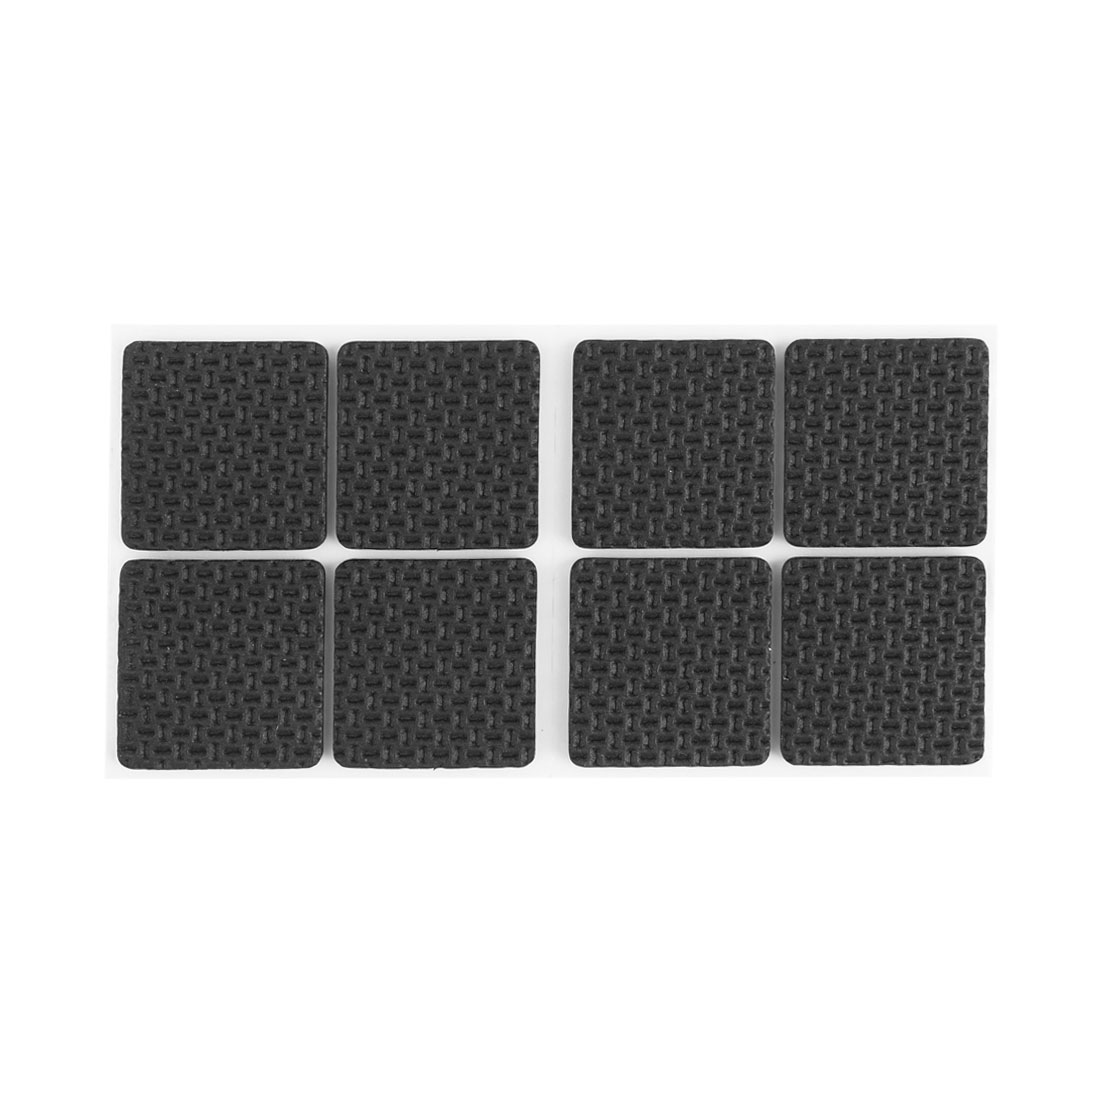 Furniture Square Shaped Self-adhesive Anti-slip Cushion Pads Mat 8 Pcs Black